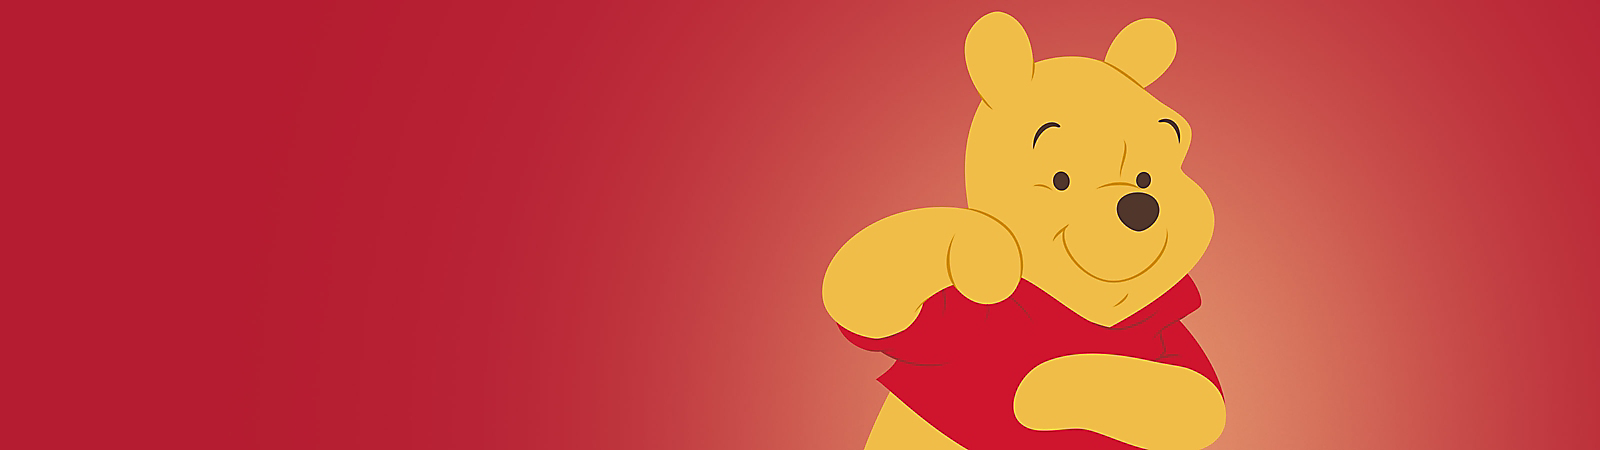 Background image of Winnie the Pooh